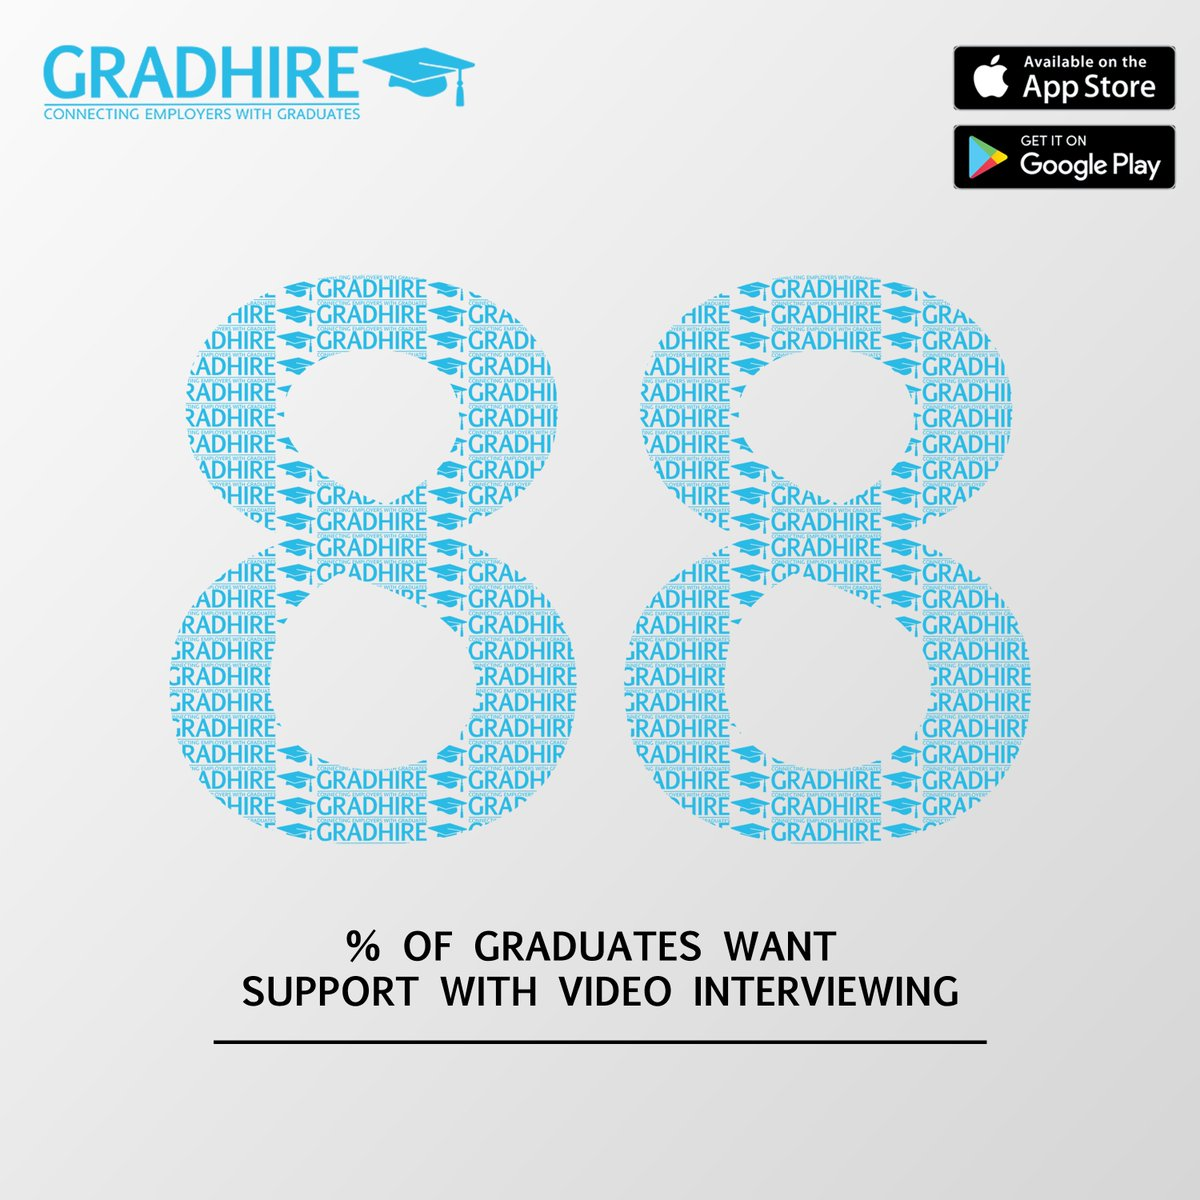 Download the Gradhire app and register for free today to gain access to a whole suite of free #videointerviewing training materials.http://www.gradhire.co.uk  #graduatecareers #graduatejobs #studentjobs #lockdowncareersearch #interviewsinlockdown #virtualinterviewspic.twitter.com/pgiRWVRf6u